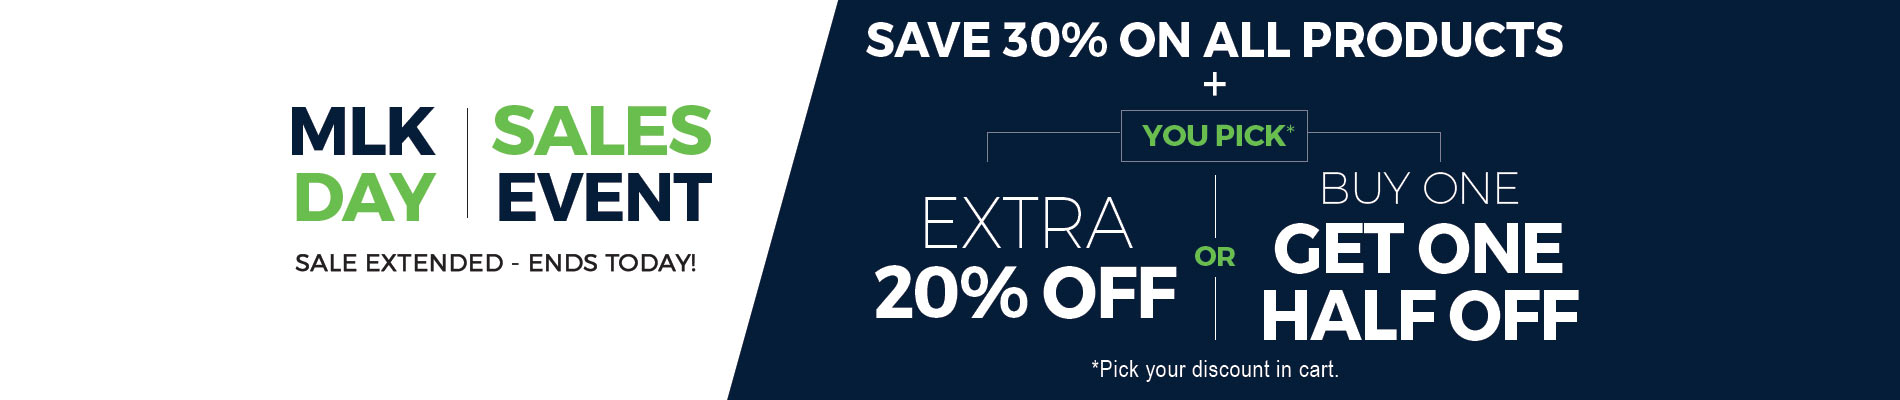 Save 30% + Extra 20% OR Buy One, Get One Half Off